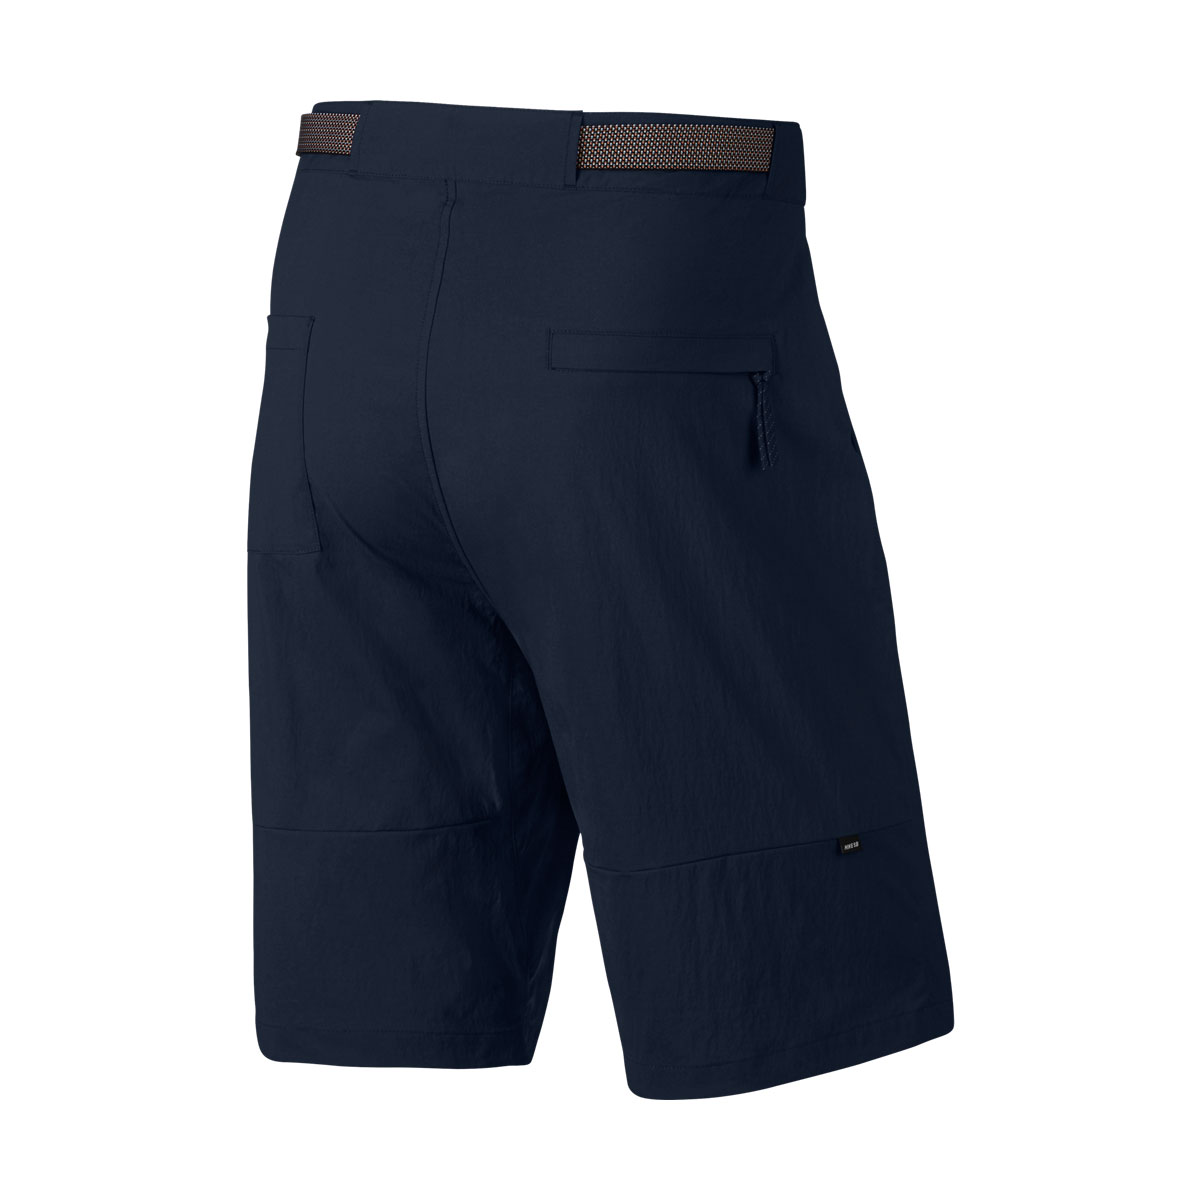 NIKE AS M NK SB FLX EVRT SHORT (Nike SB FLX Eve let short) (OBSIDIAN) 17SU-I